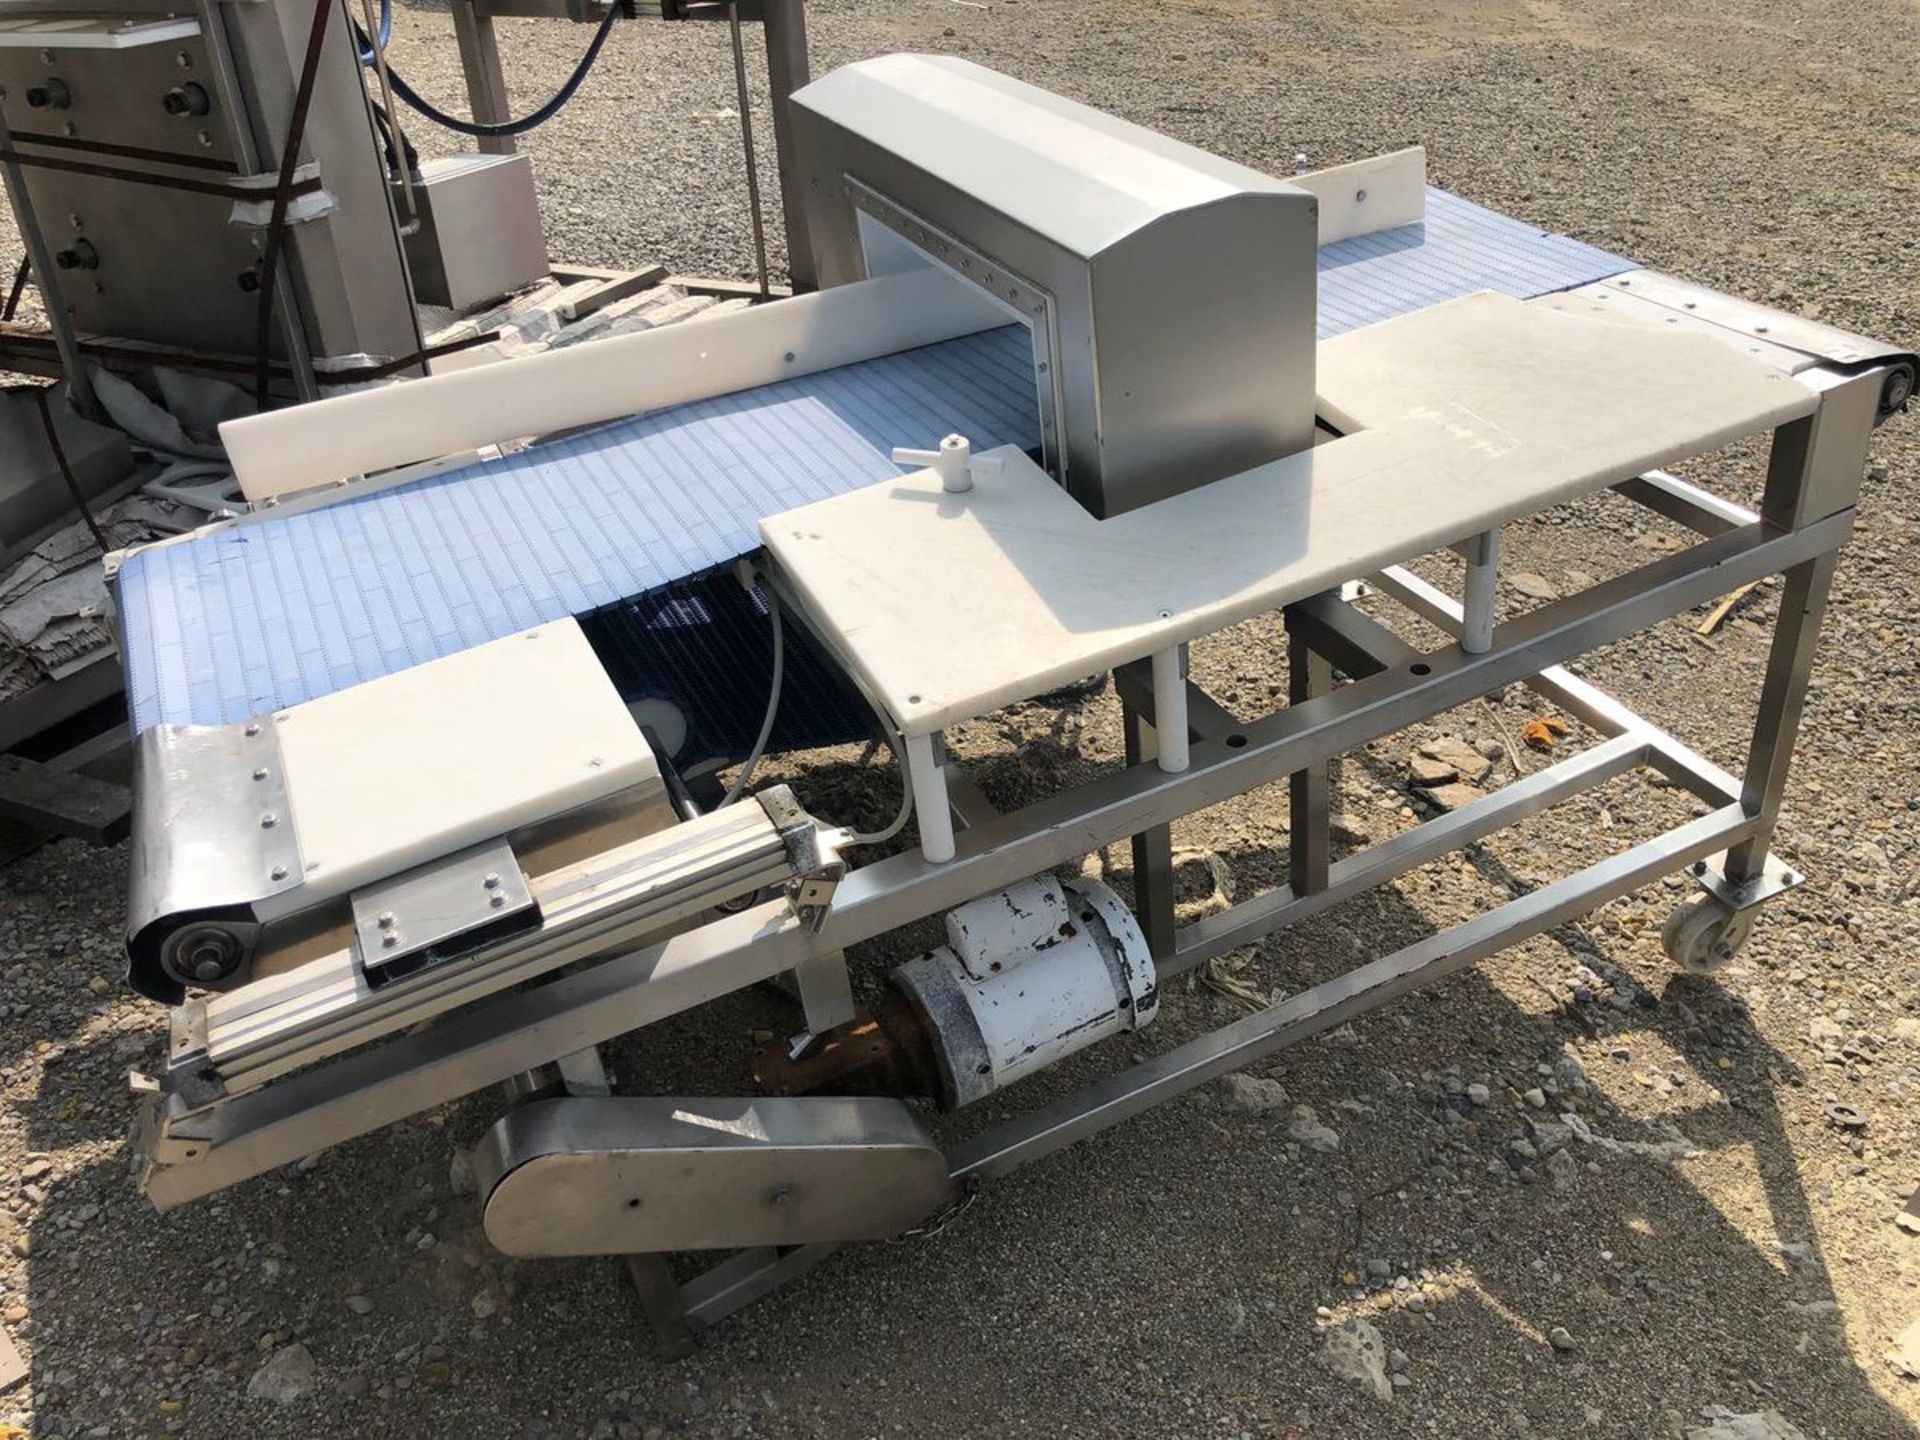 Safeline Metal Detector, Approx Aperture 20in W x 7in Clear | Rig Fee: $150 See Full Desc - Image 3 of 5